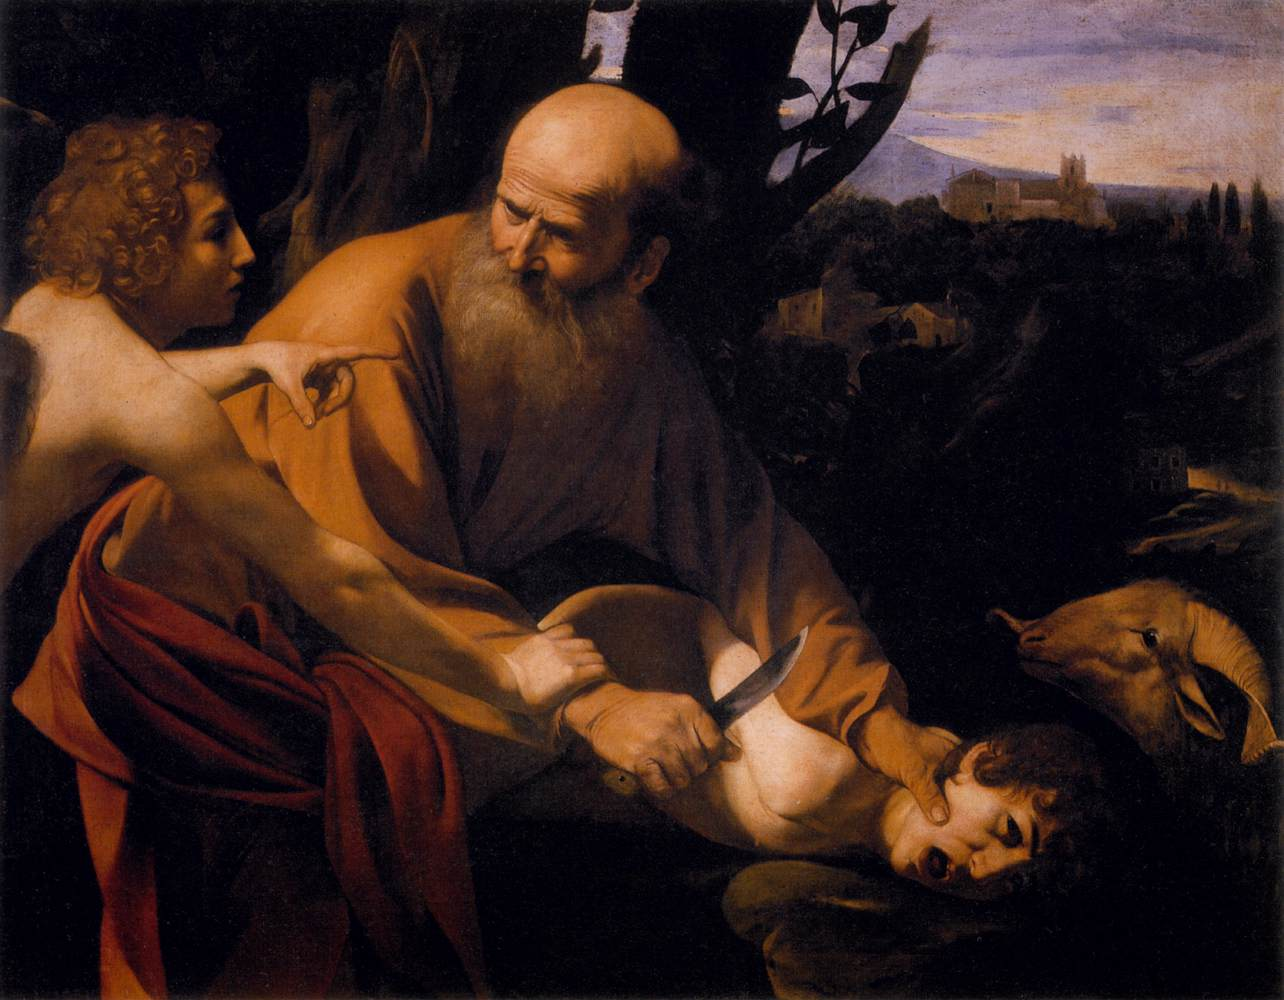 The Sacrifice of Isaac - Caravaggio 1601